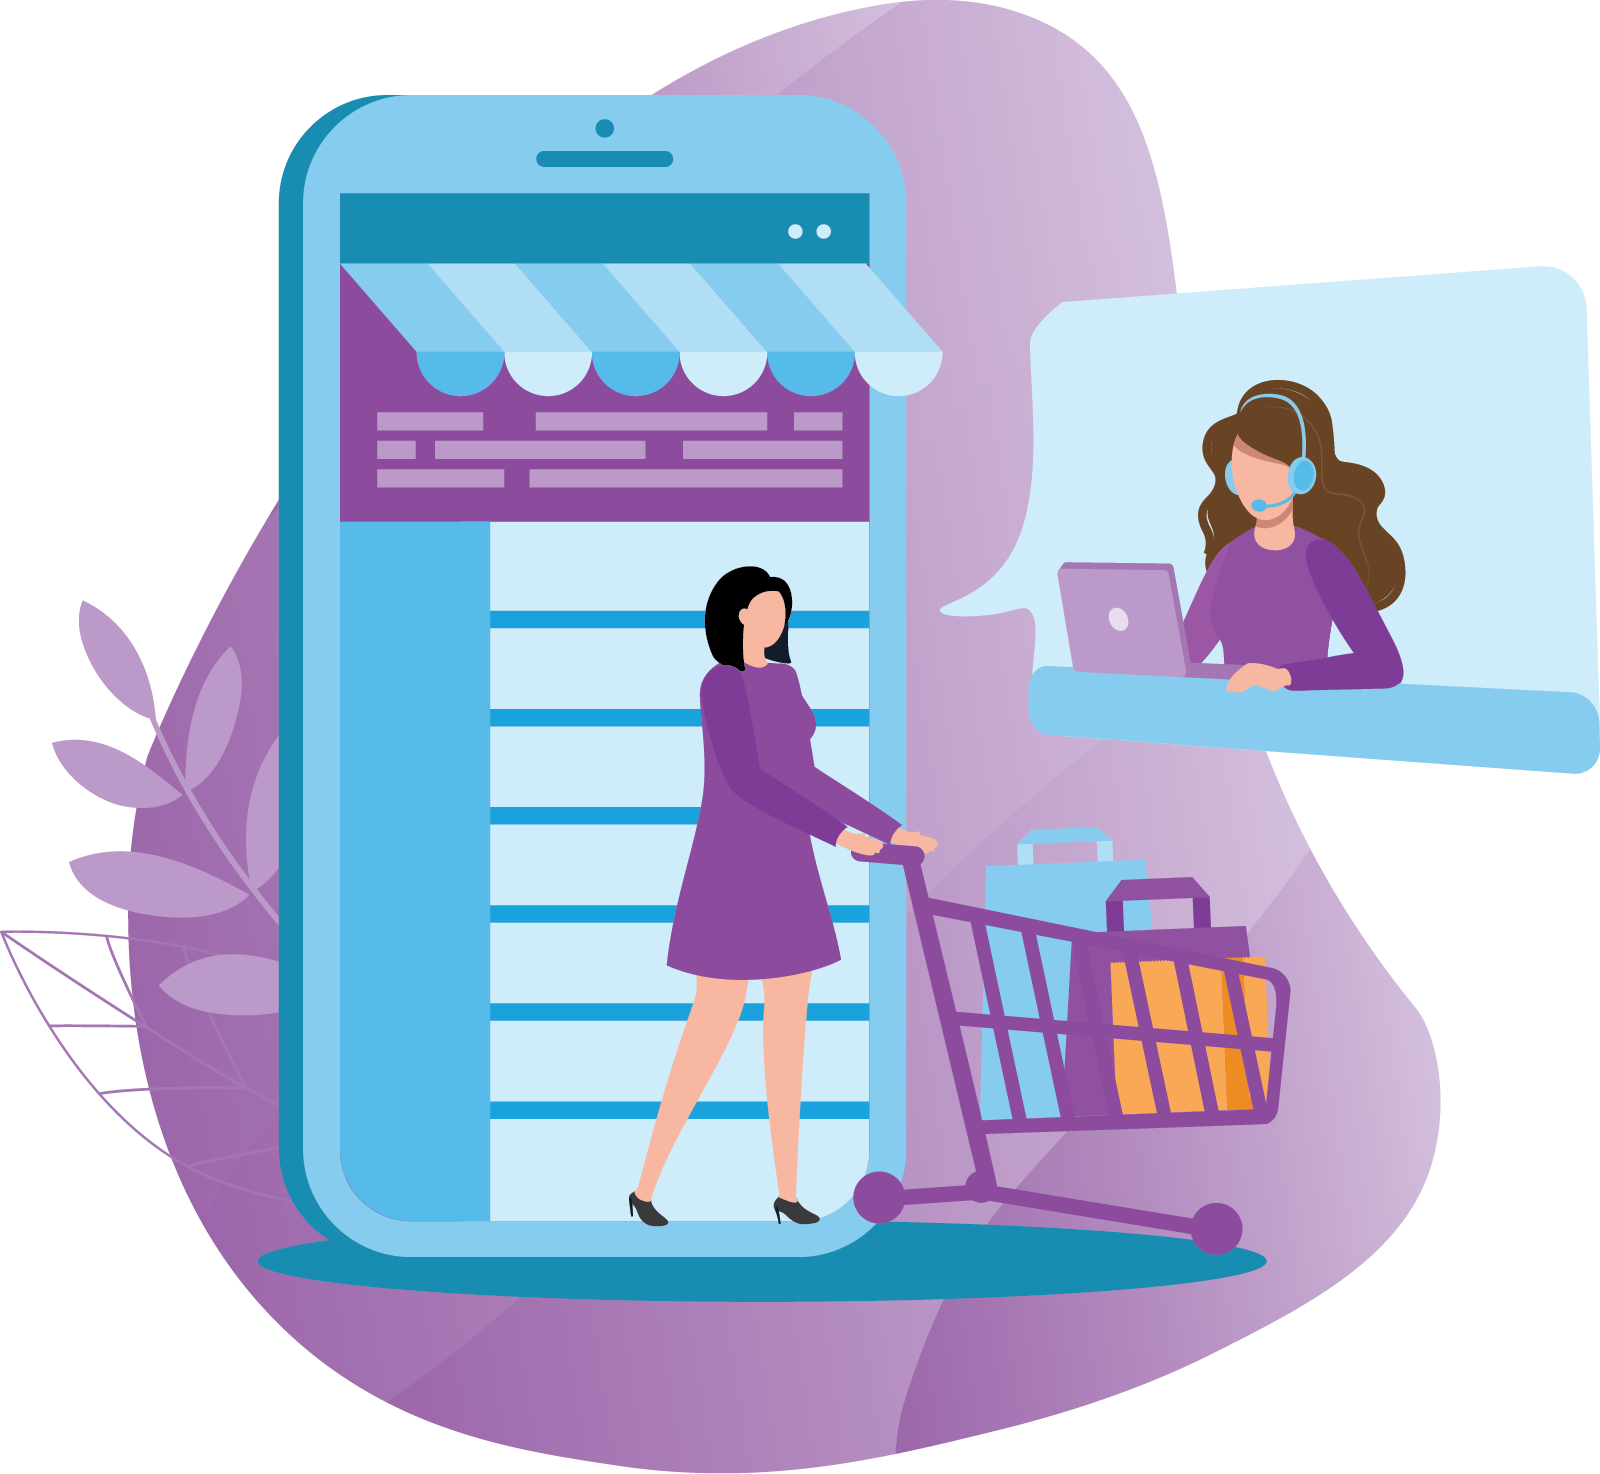 E-Commerce Support Chat Live Video Messaging